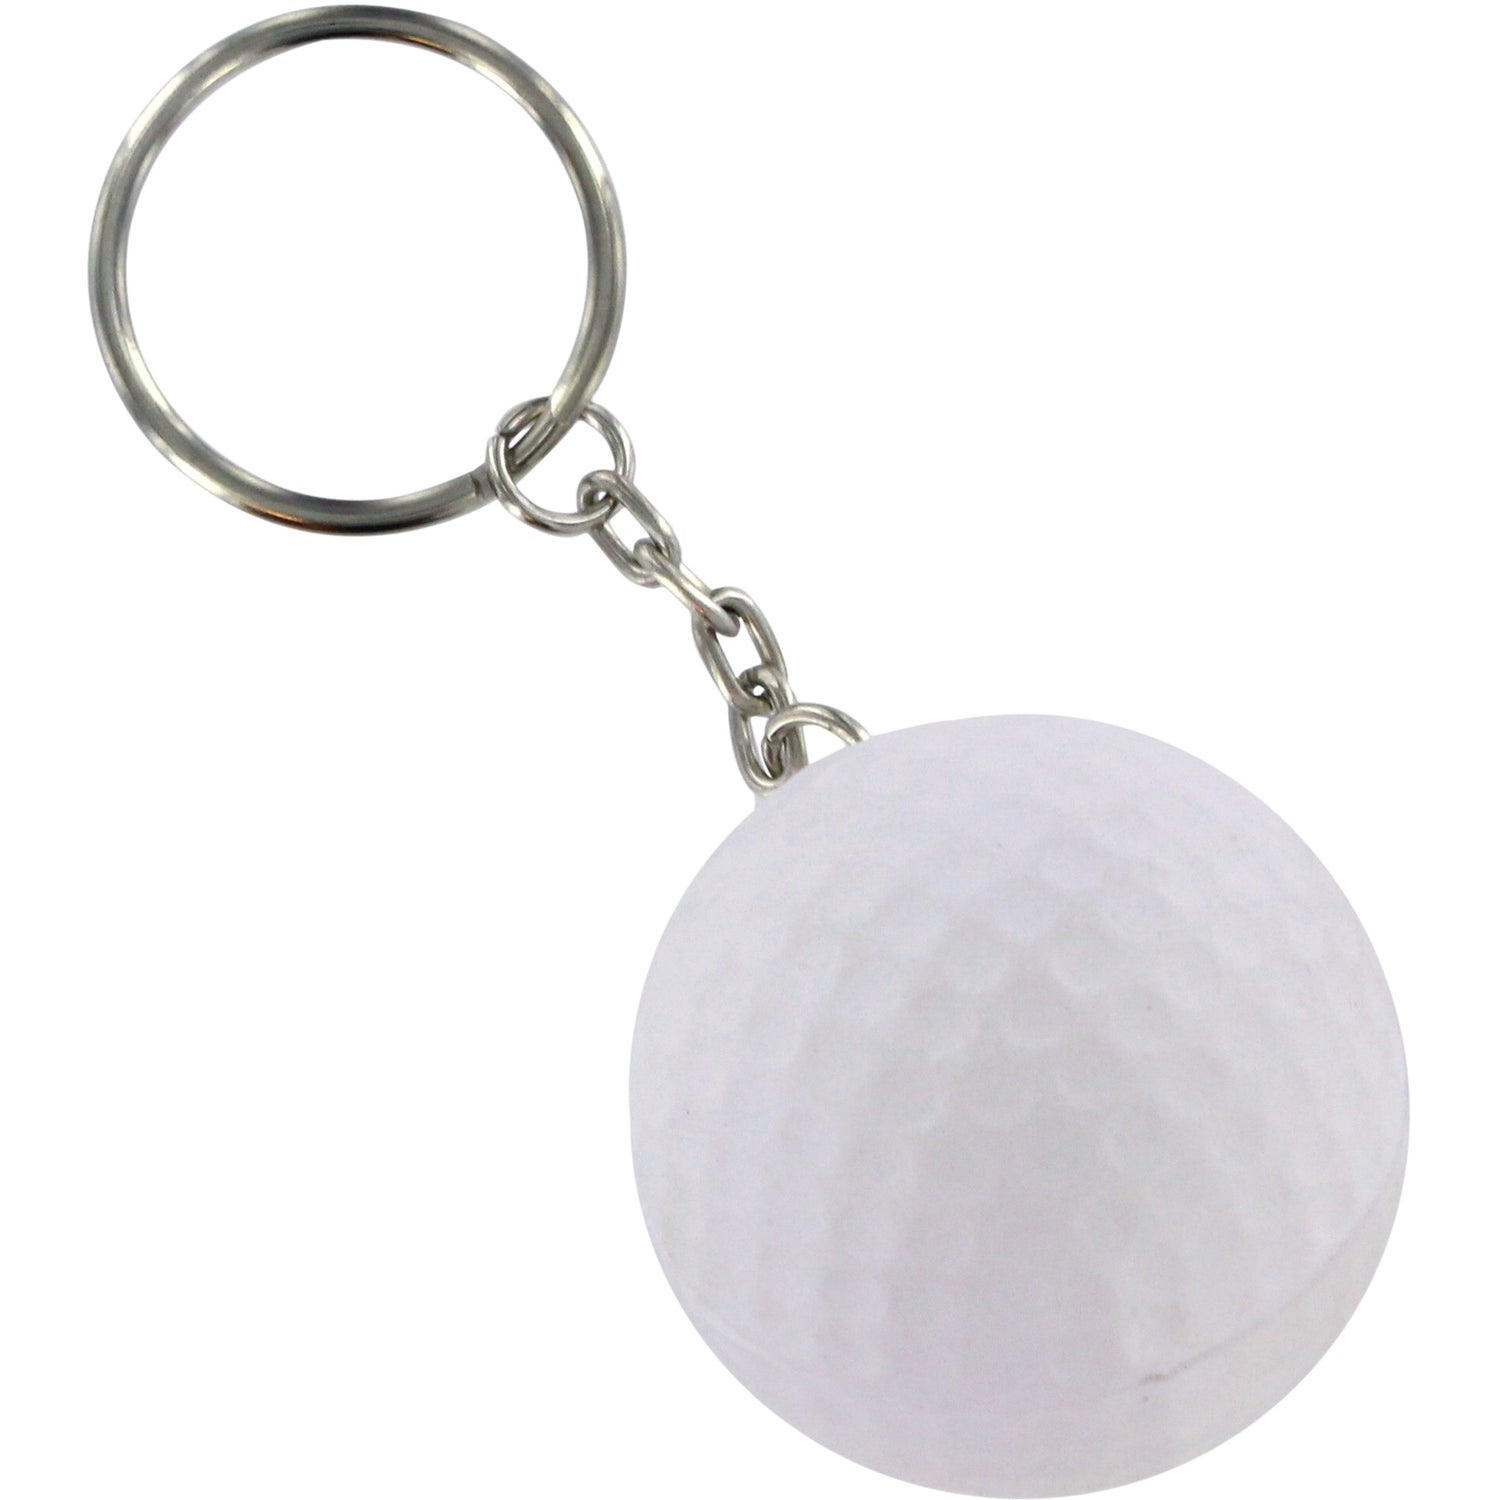 Promotional Golf Ball Stress Ball Key Chains with Custom Logo for ...